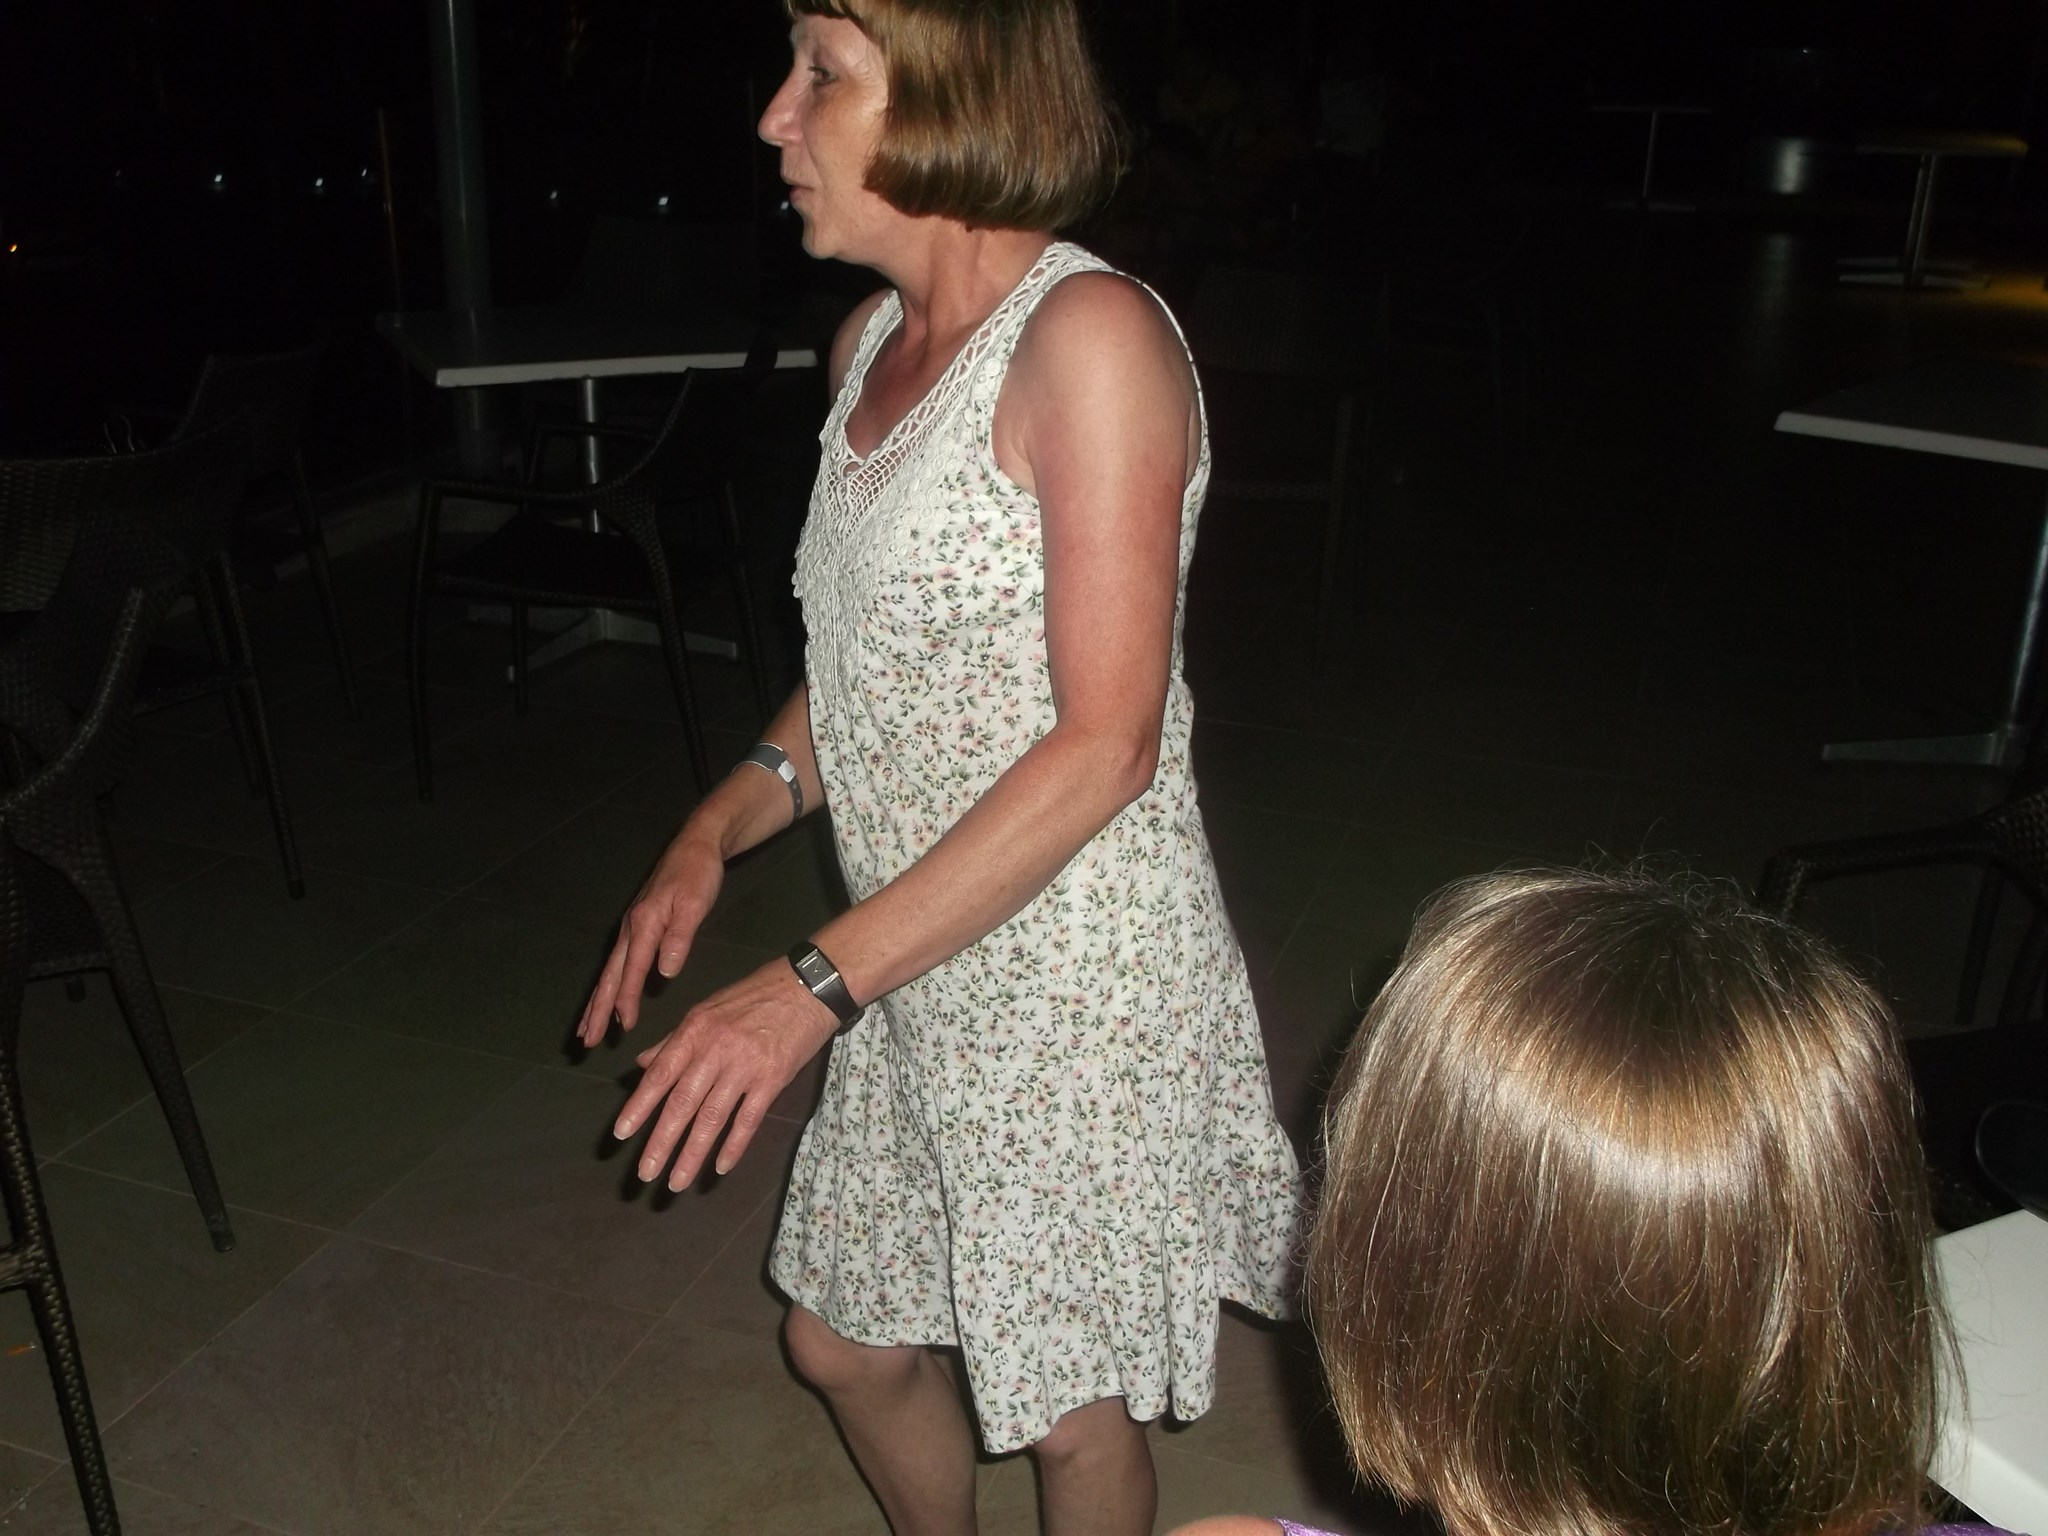 Ann showing off her dance moves in Tunisia!